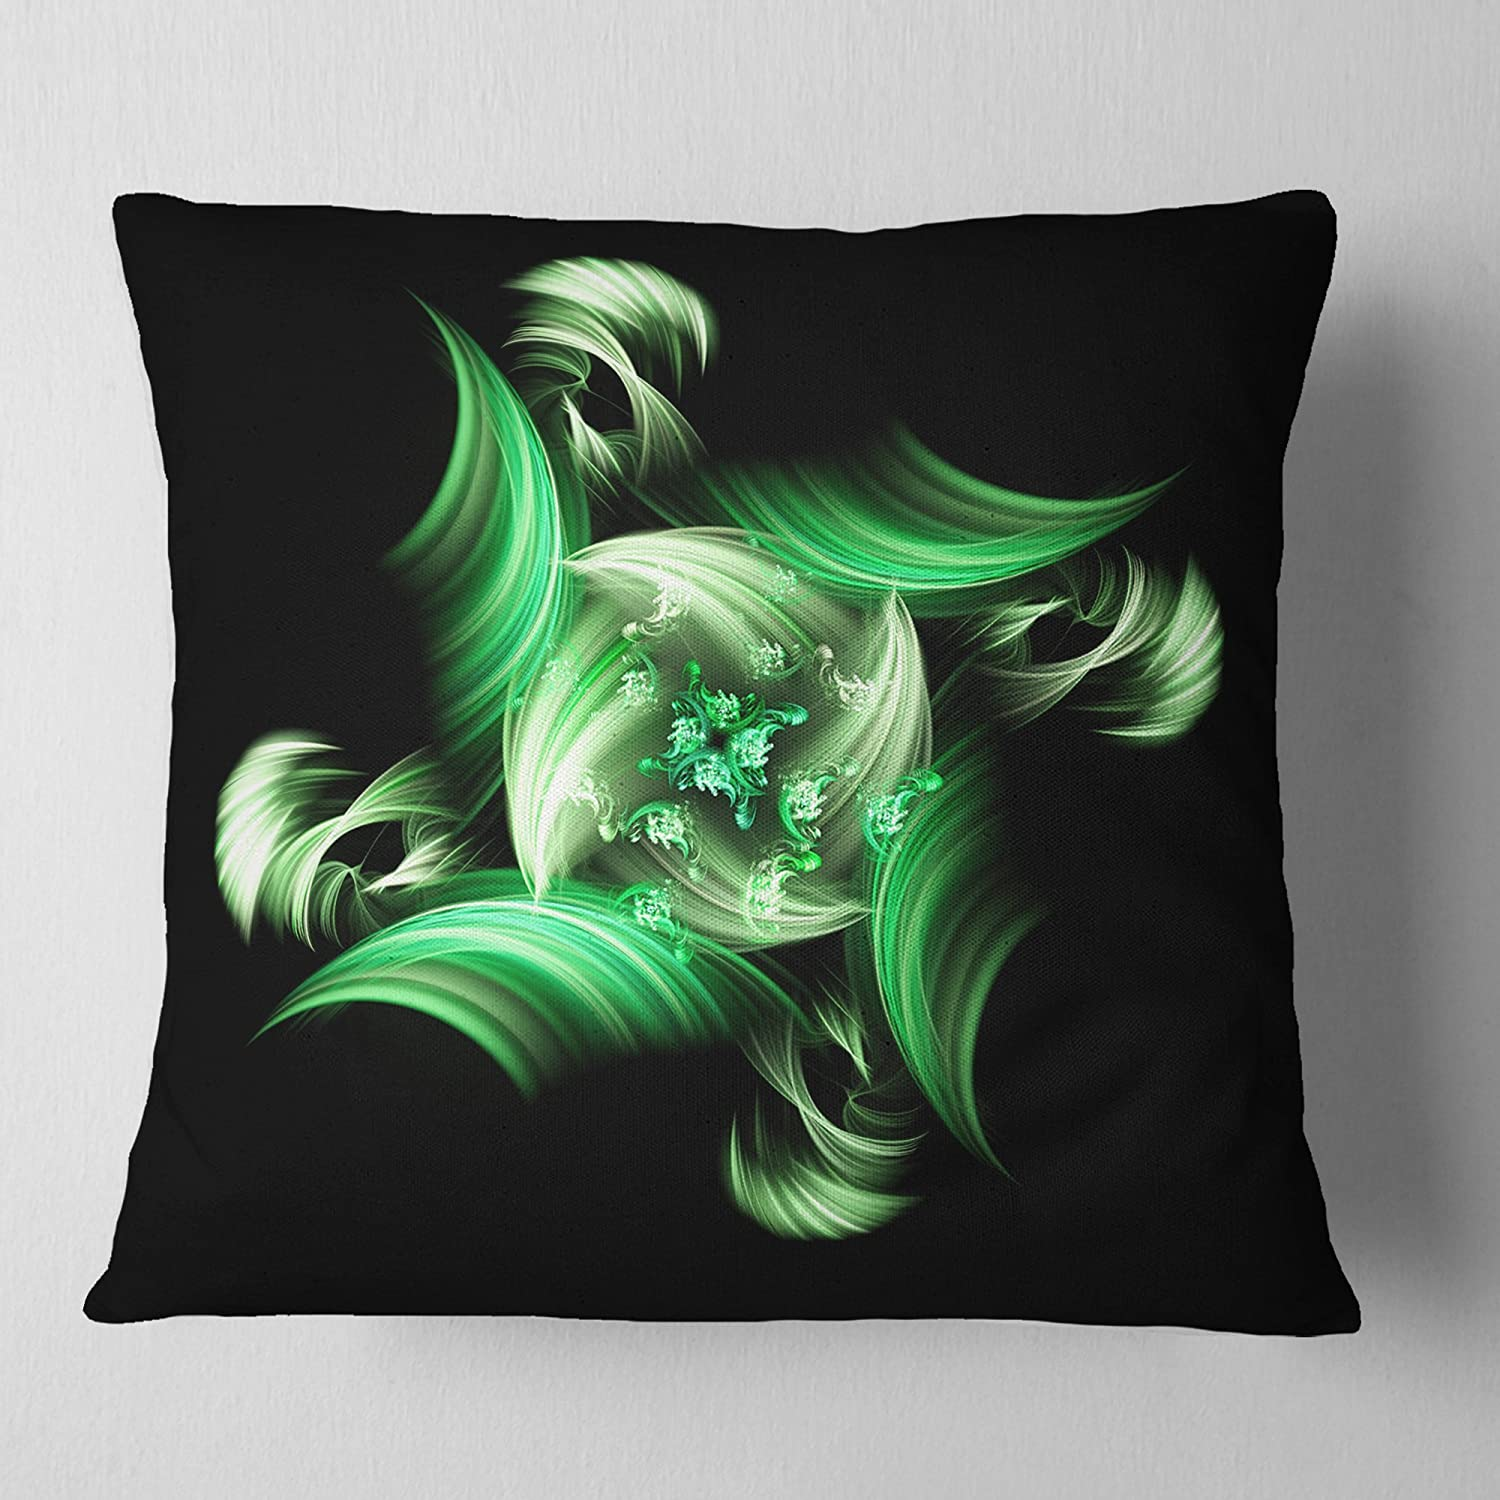 x 16 in Designart CU12128-16-16 Rotation of Small World Green in Black Floral Cushion Cover for Living Room Sofa Throw Pillow 16 in in